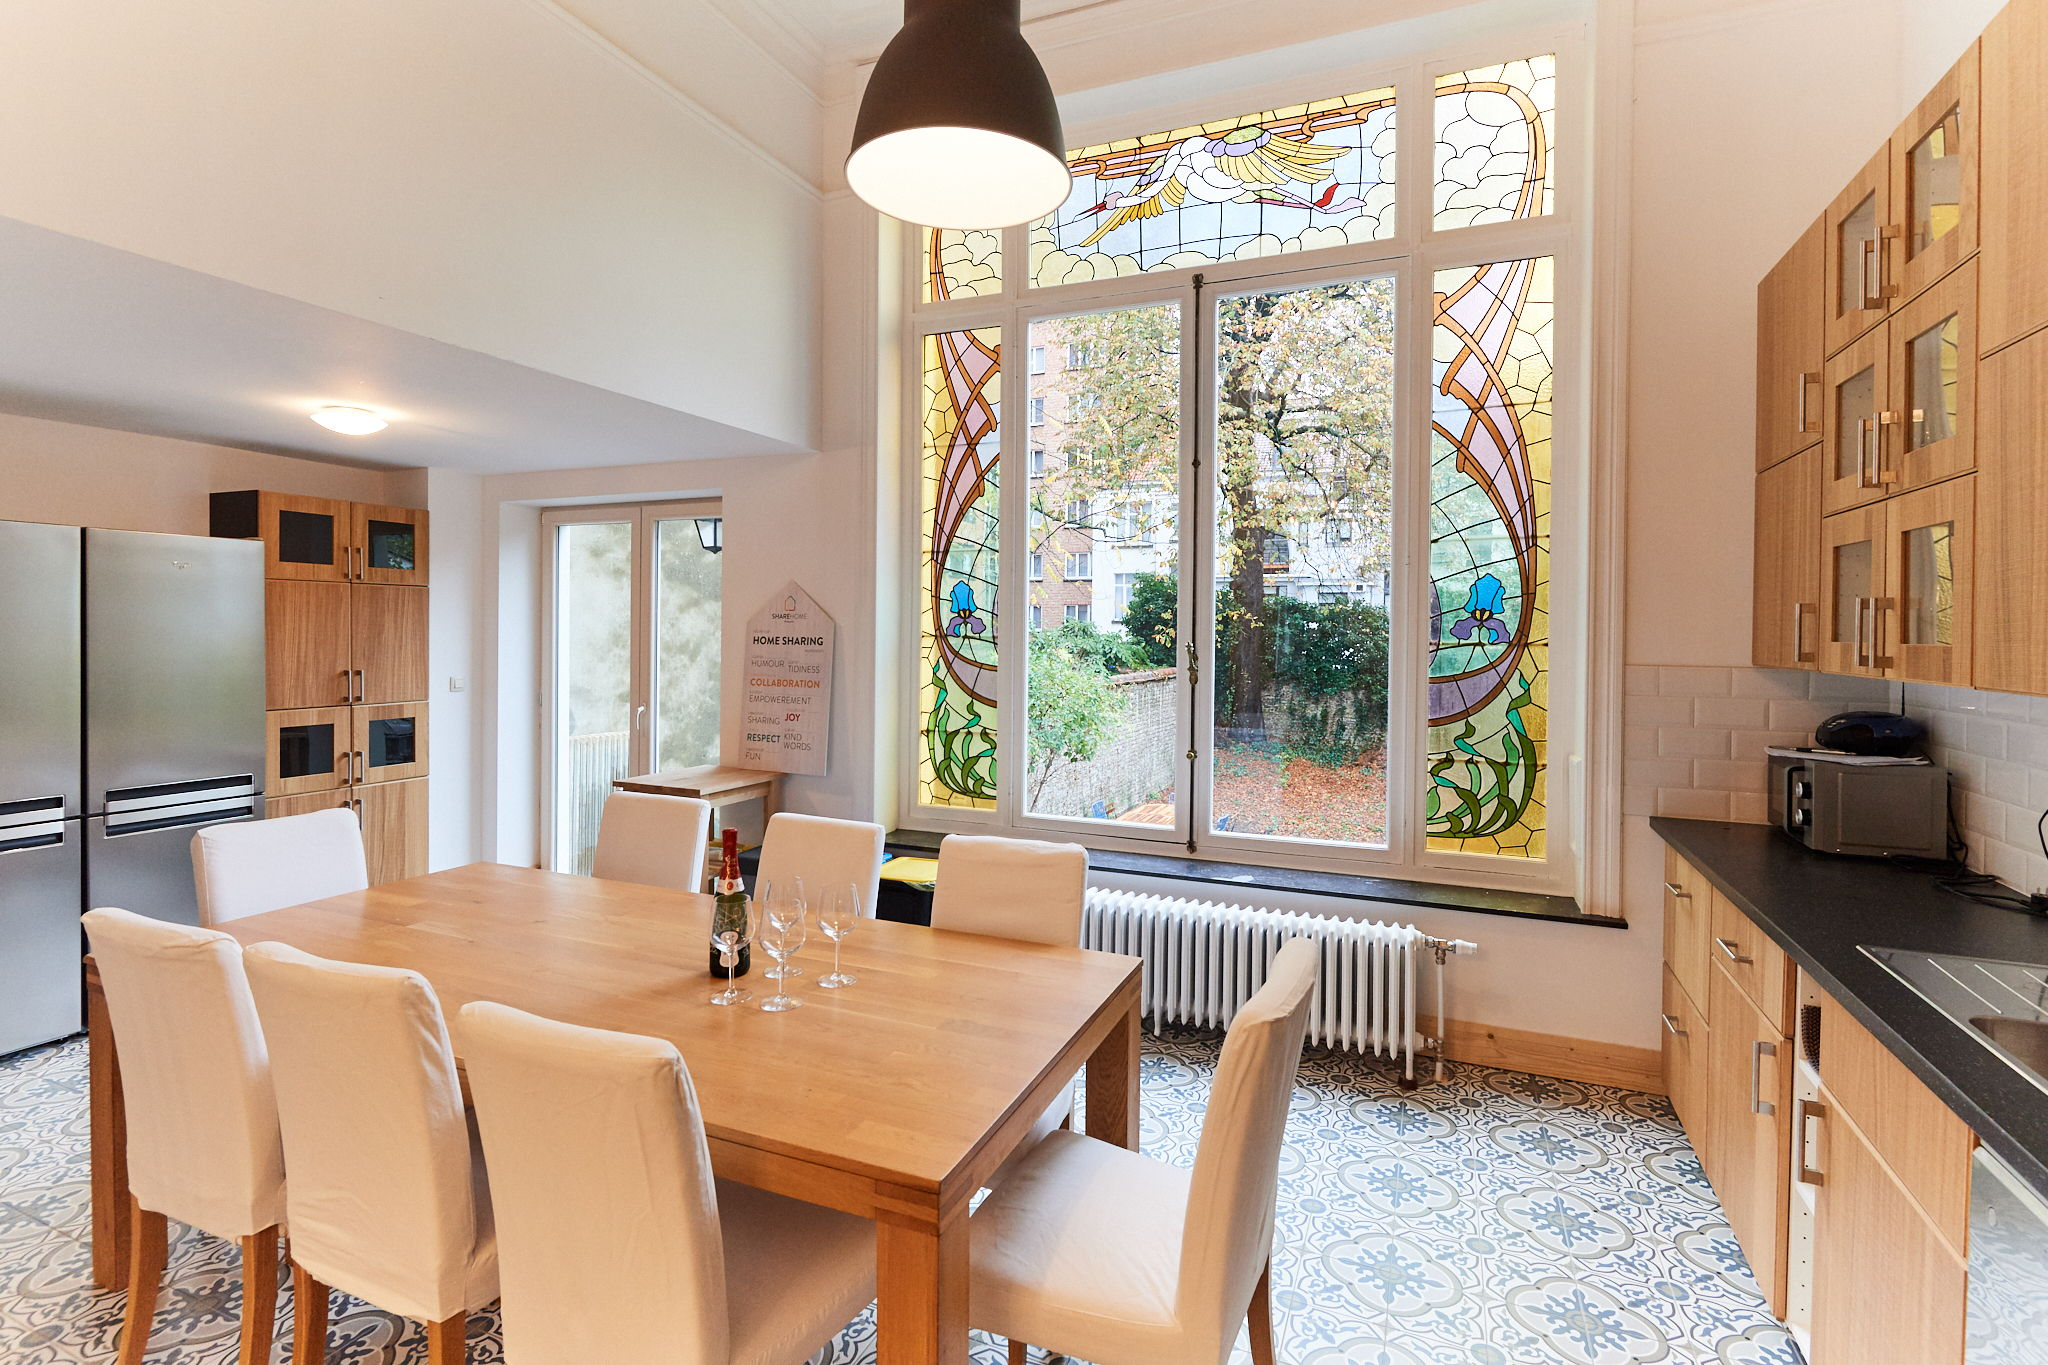 fully-equipped kitchen including oven and microwave and with magnificent original 19th century stained glass windows